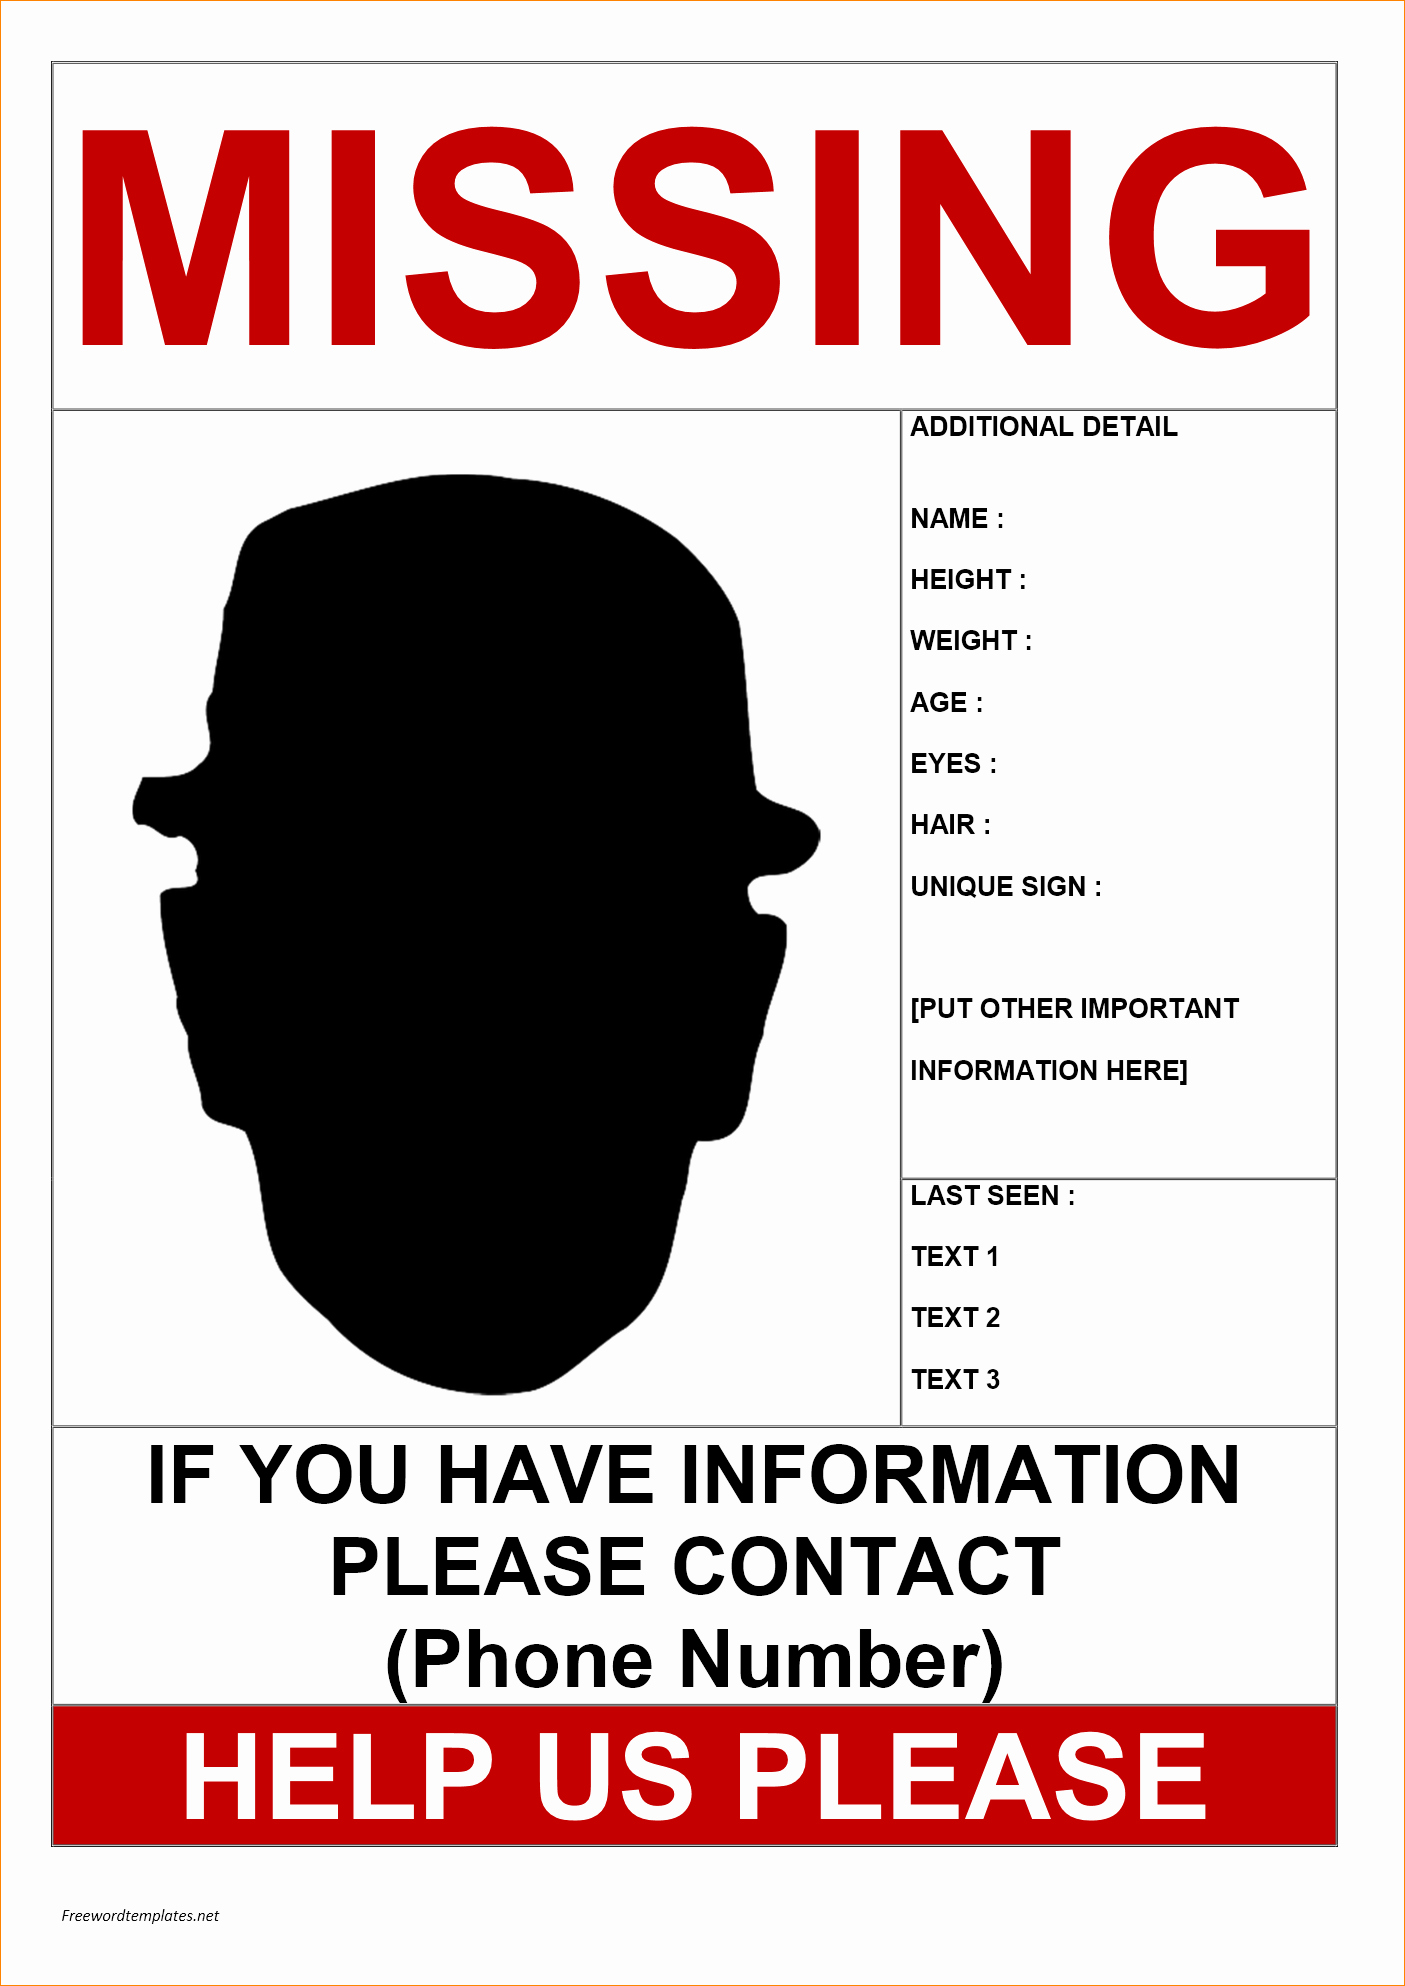 Missing Person Poster Template Beautiful Missing Person Poster Templates